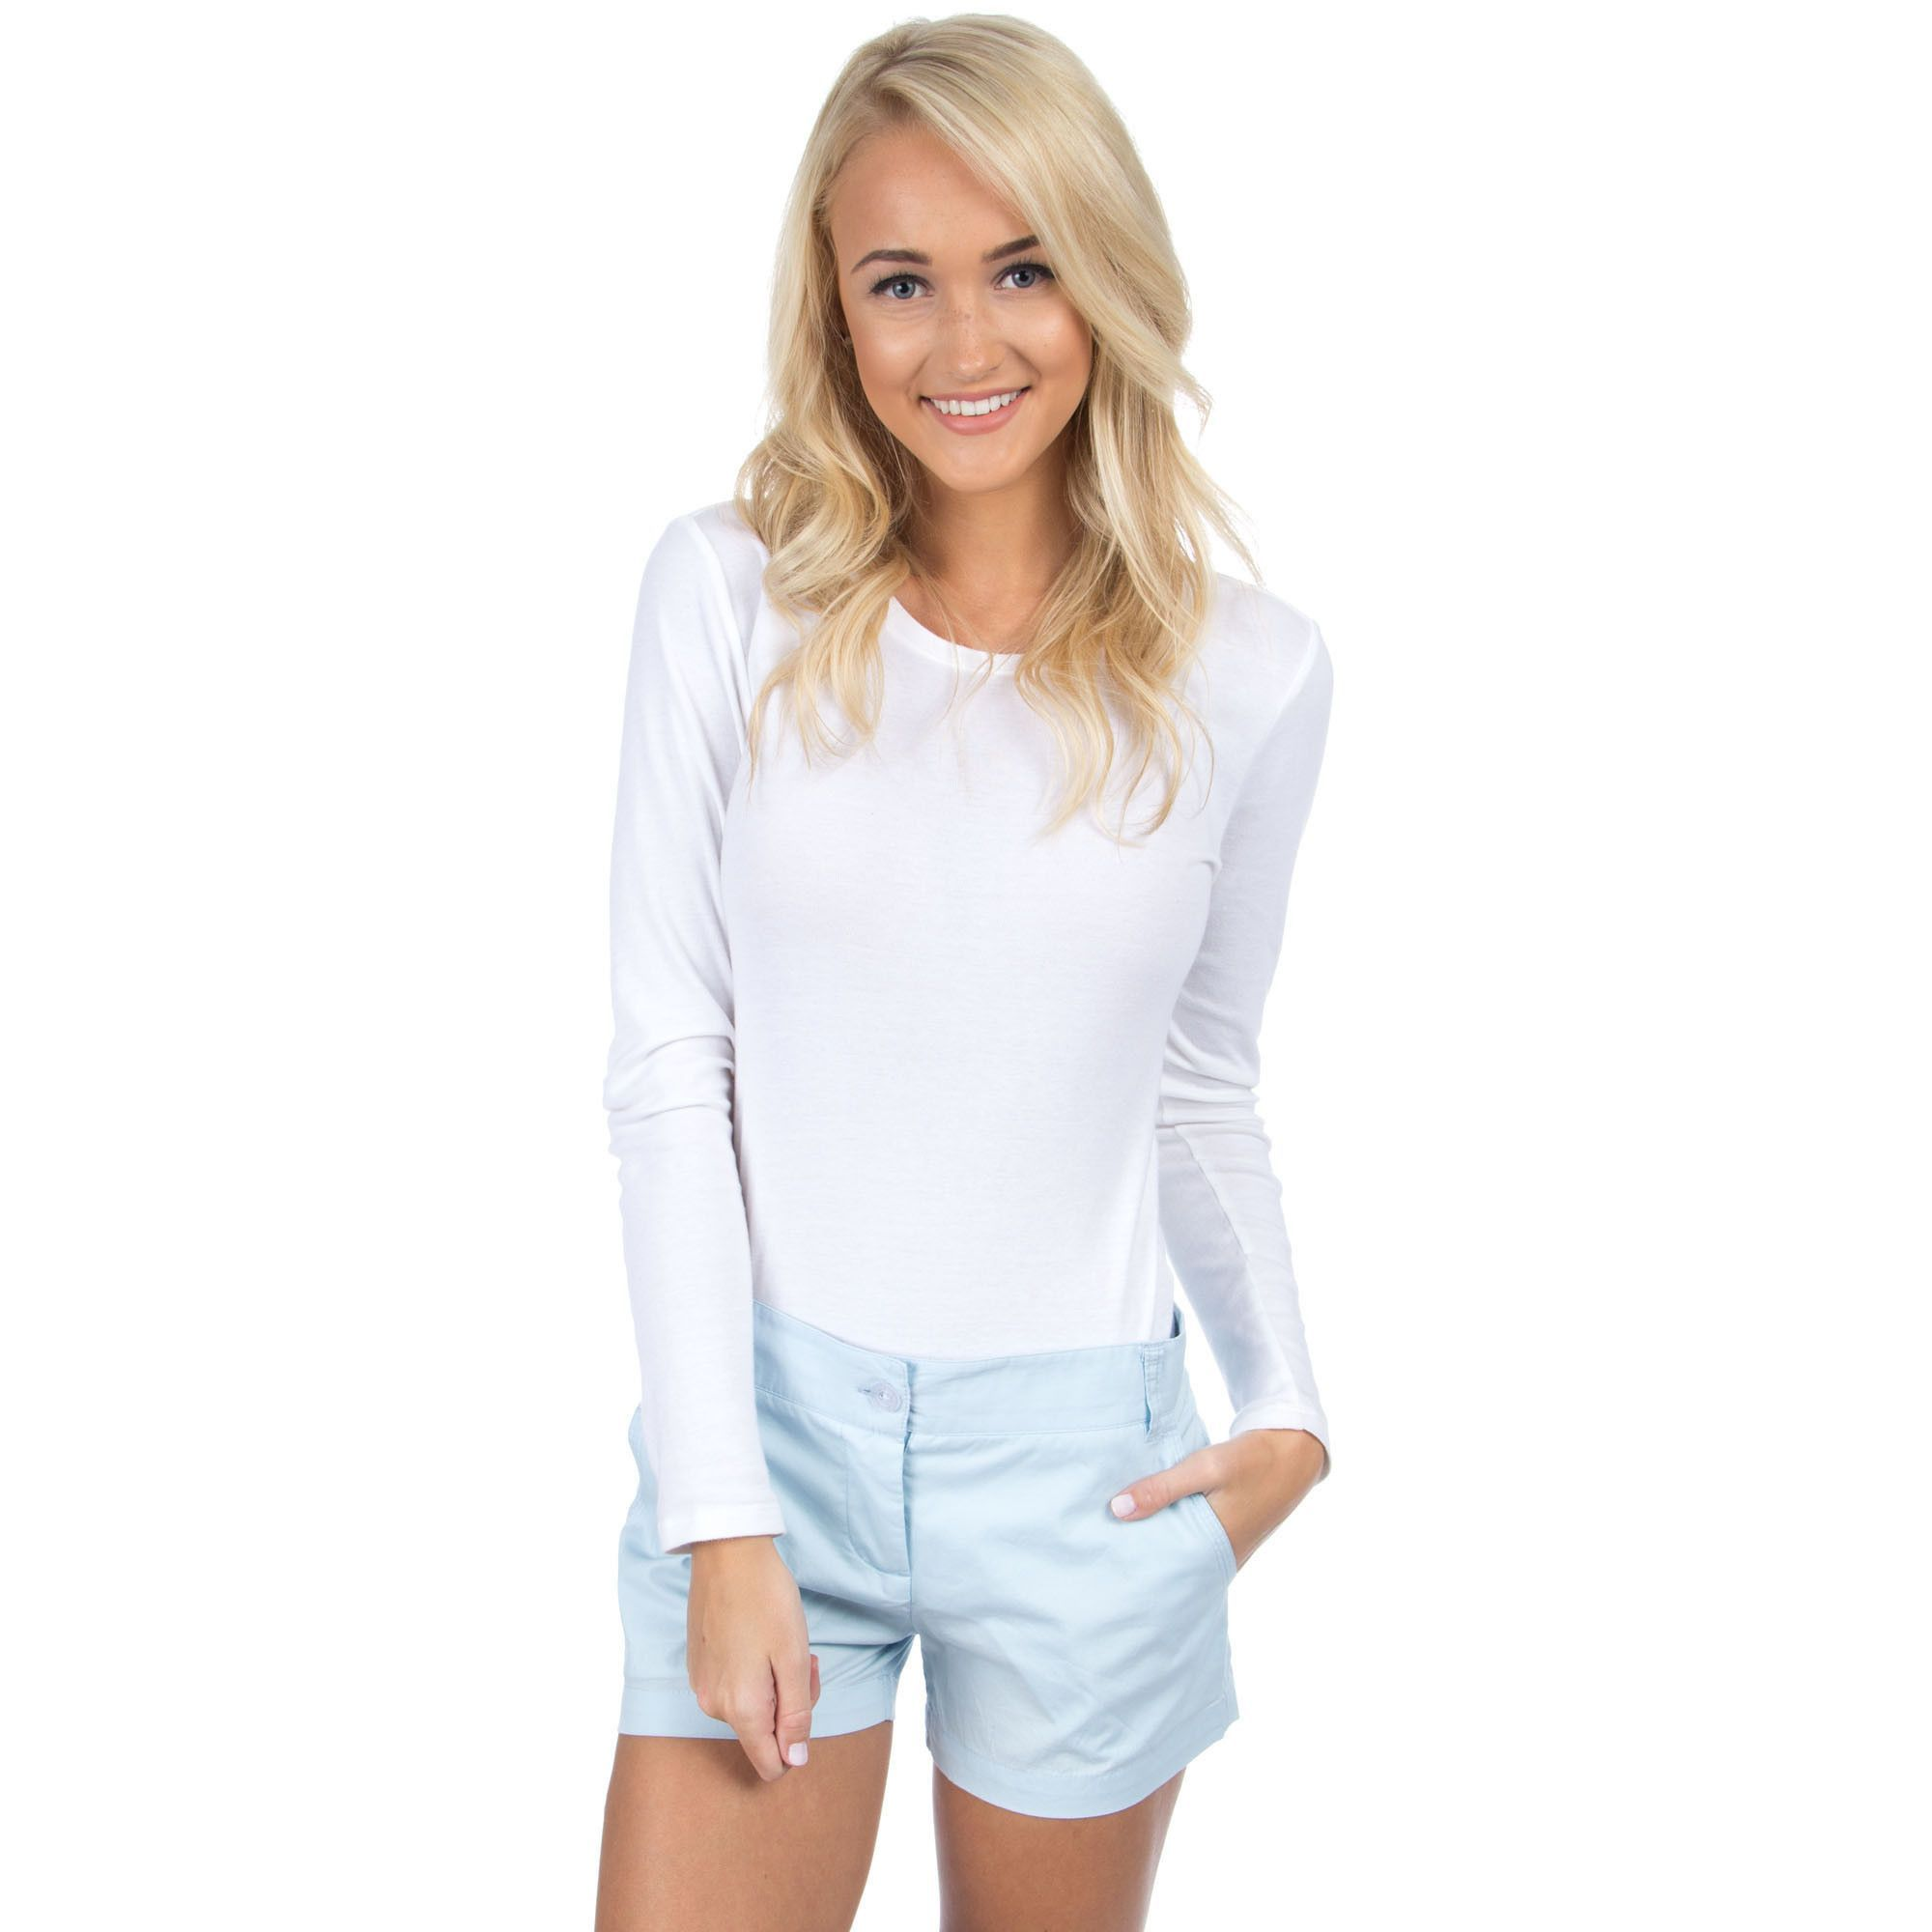 Poplin Short in Light Blue by Lauren James